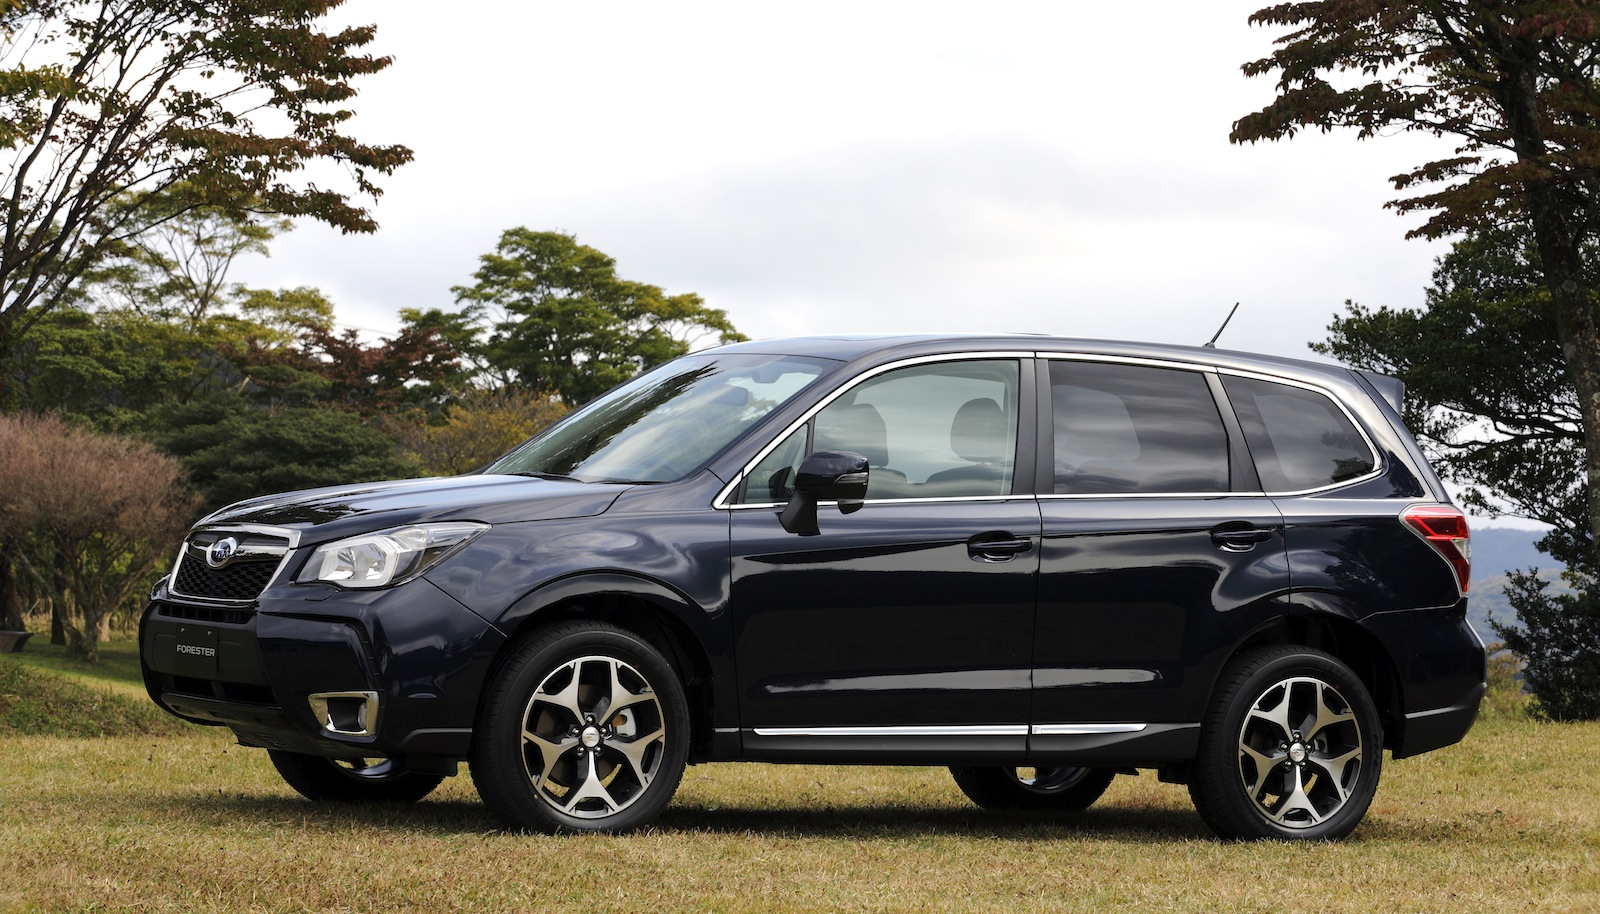 2013 subaru forester information and photos momentcar subaru forester 2013 1 subaru forester 2013 1 vanachro Image collections